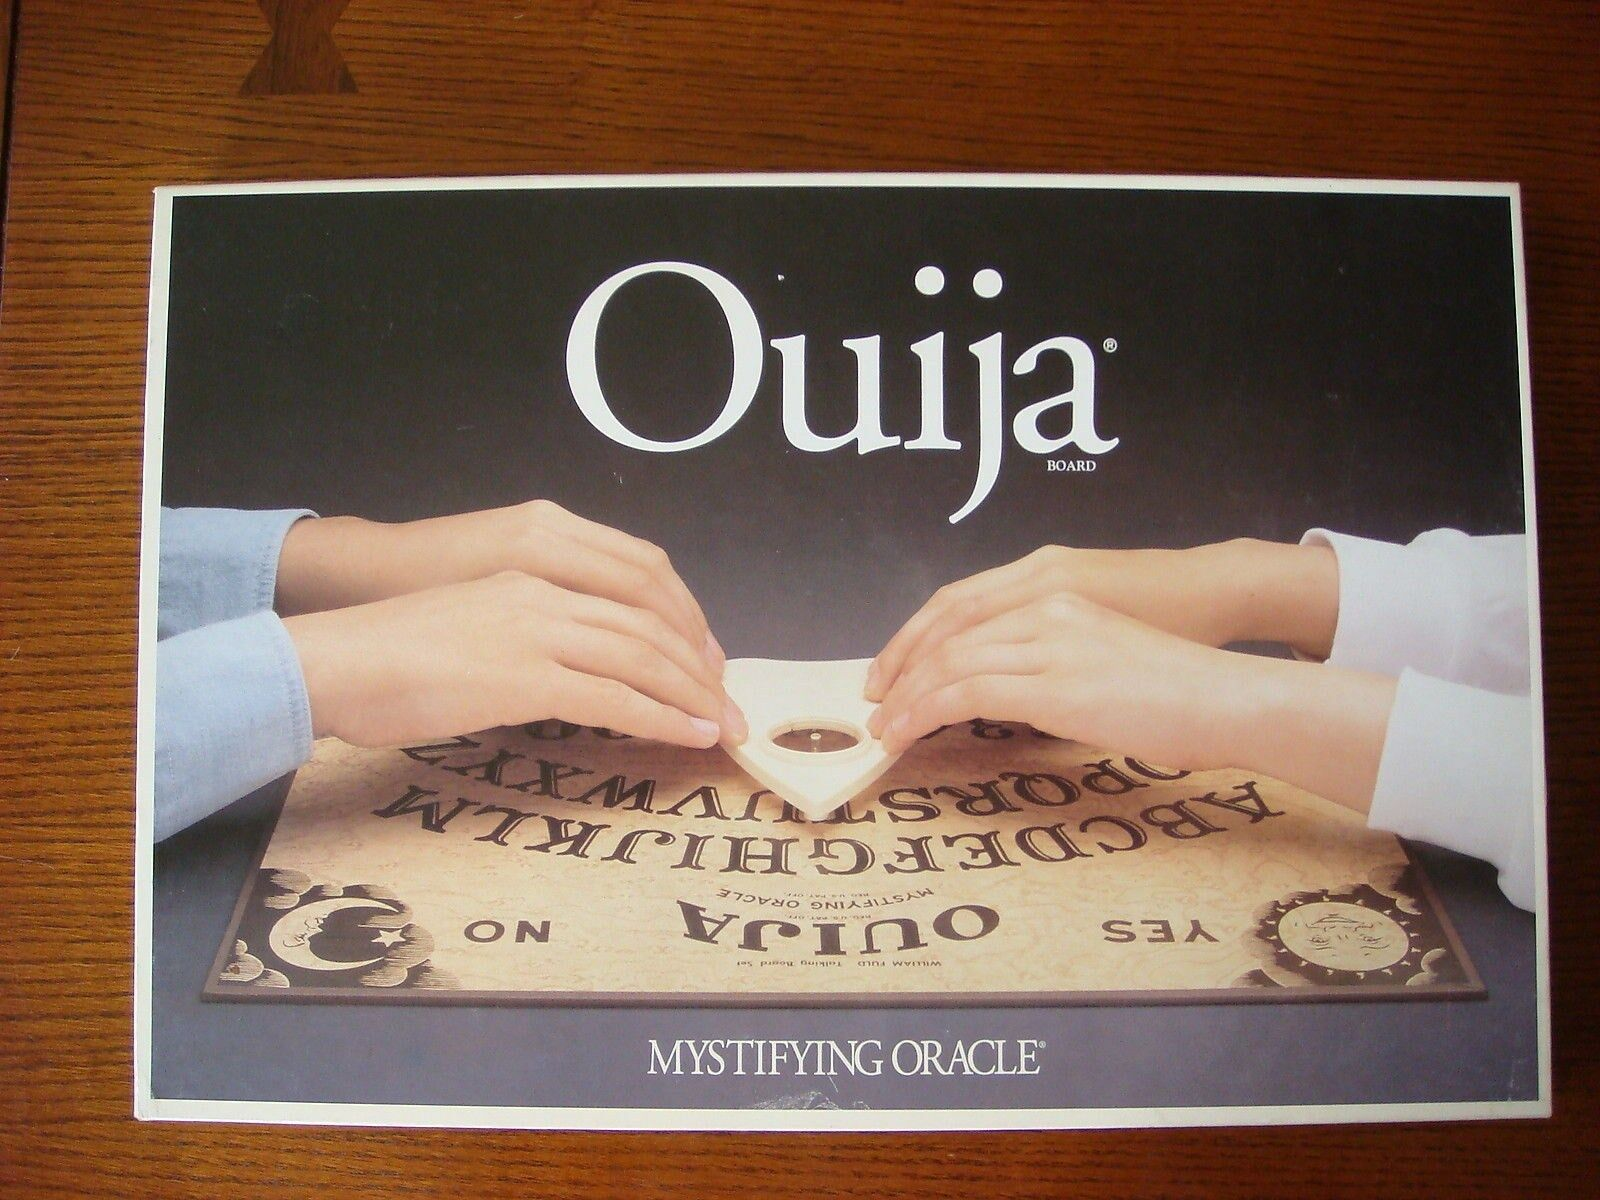 Ouija Oracle Board - Mystifying Oracle Ouija - Parker Brothers  No. 600 356d0d